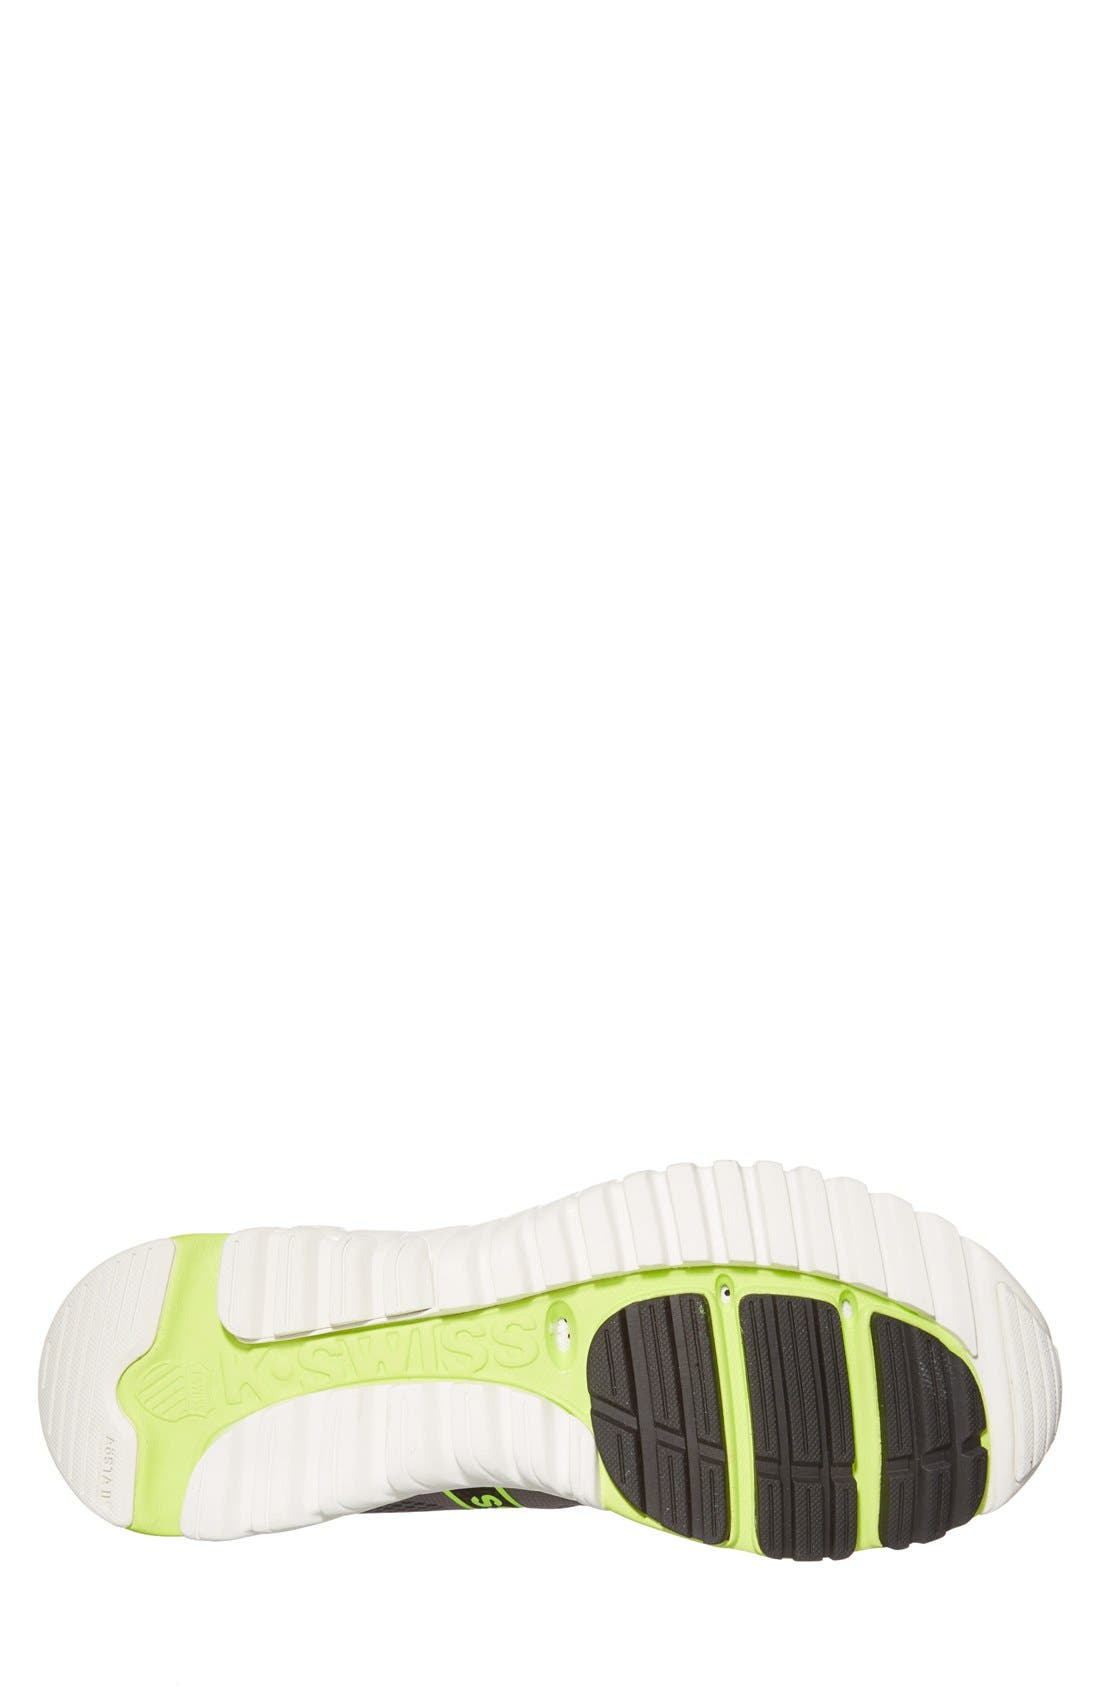 Alternate Image 4  - K-Swiss 'KBL 2 Neutral' Running Shoe (Men)